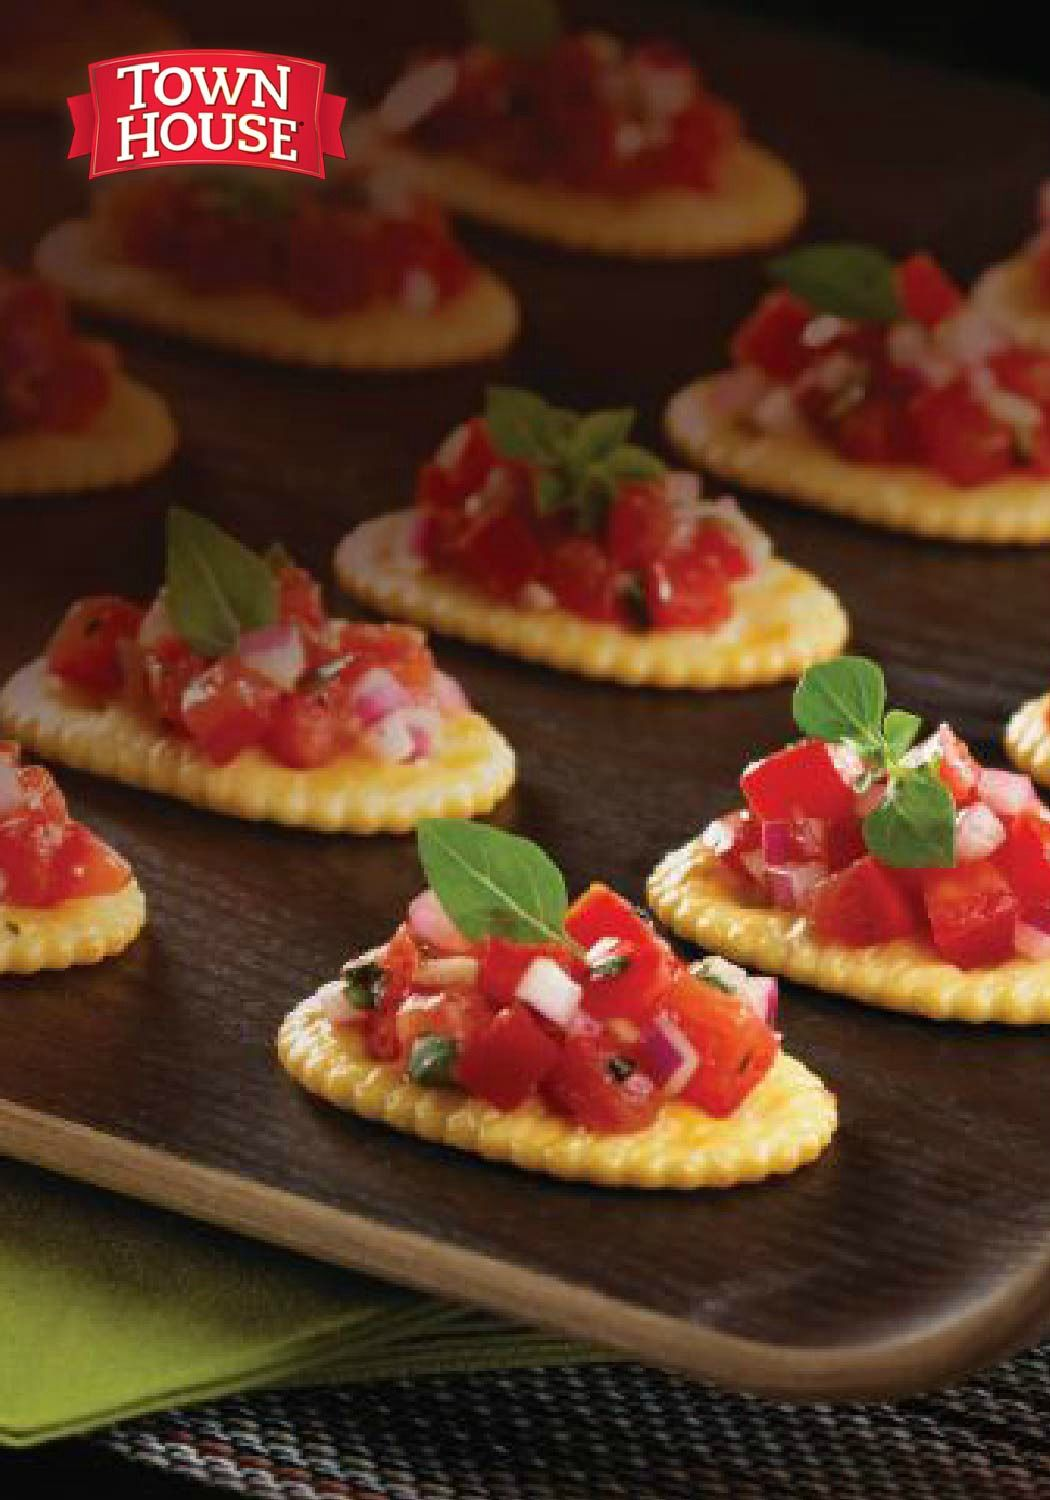 Bruschetta Is An Incredible Appetizer To Serve At Your Next Party Served On Town House Appetizer Recipes Recipes Appetizers And Snacks Finger Food Appetizers